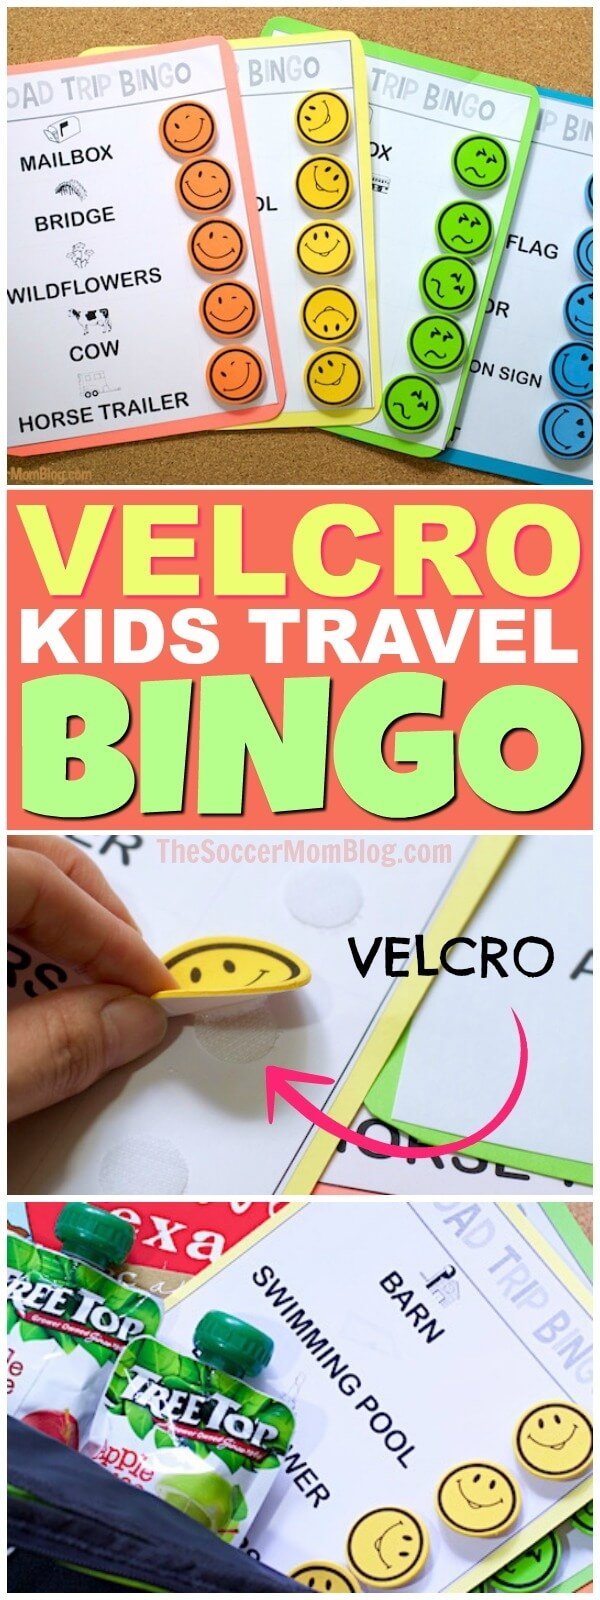 Keep your kids entertained for hours on car rides with this free printable Road Trip Bingo travel game! Plus more of our favorite road trip essentials!